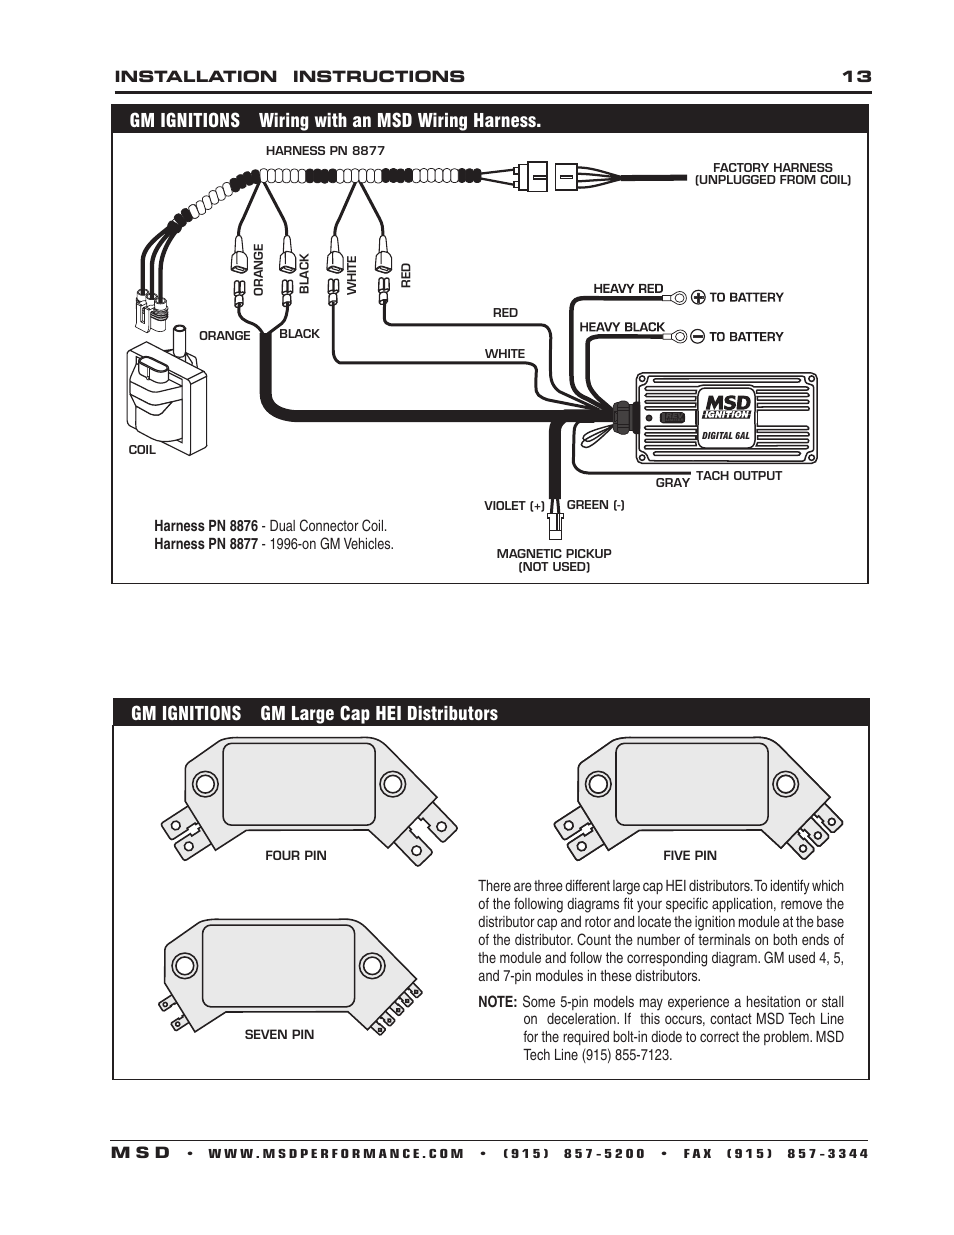 Msd Wiring Harness Another Blog About Diagram 7531 Digital Gm Ignitions With An Rh Manualsdir Com Ls